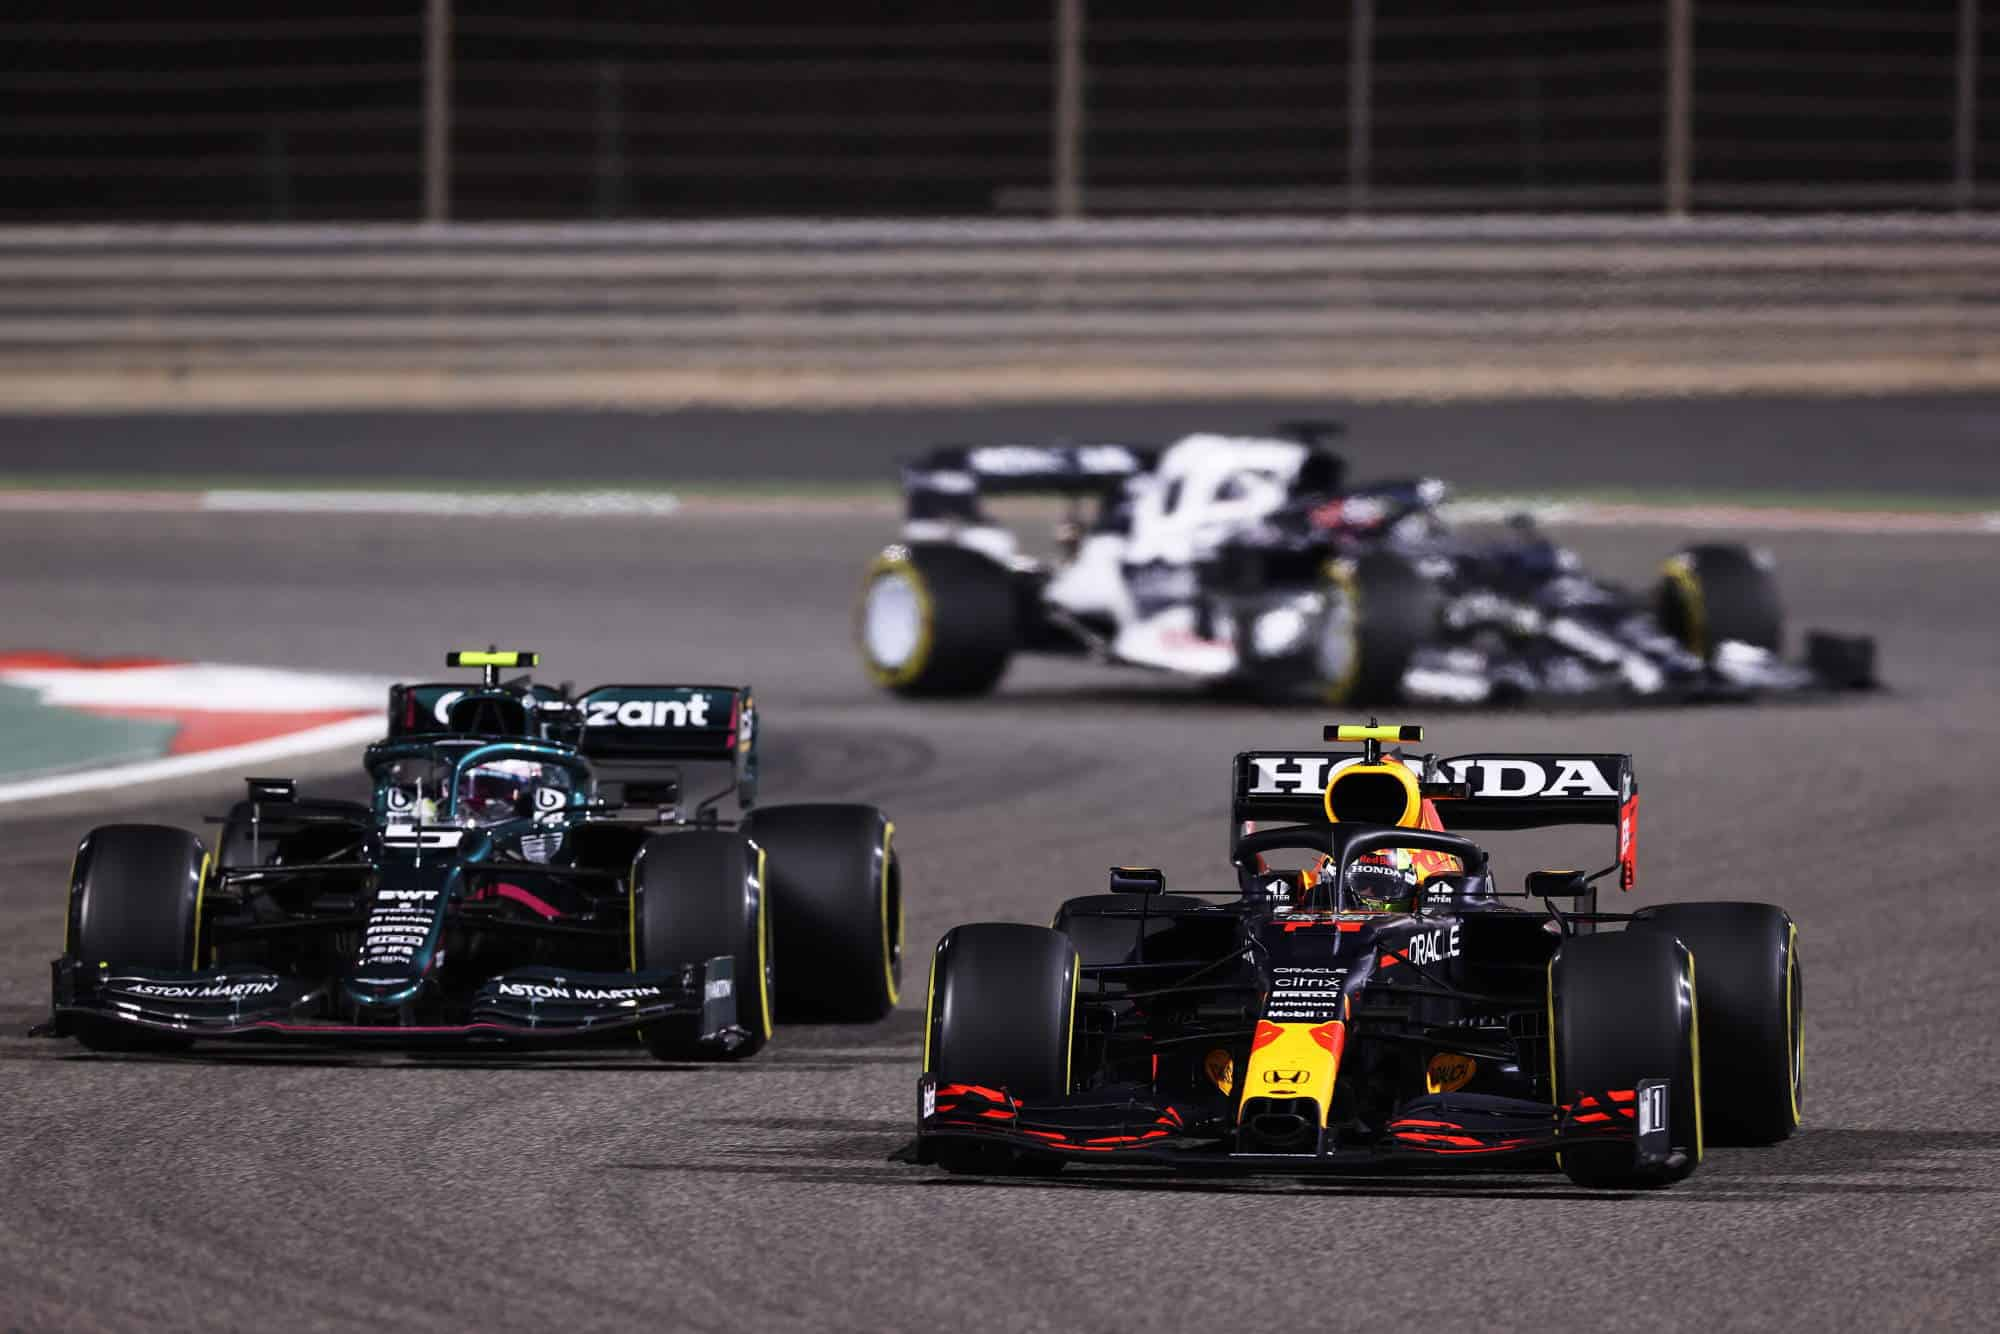 2021 Bahrain GP Perez leads Vettel Gasly Photo Red Bull